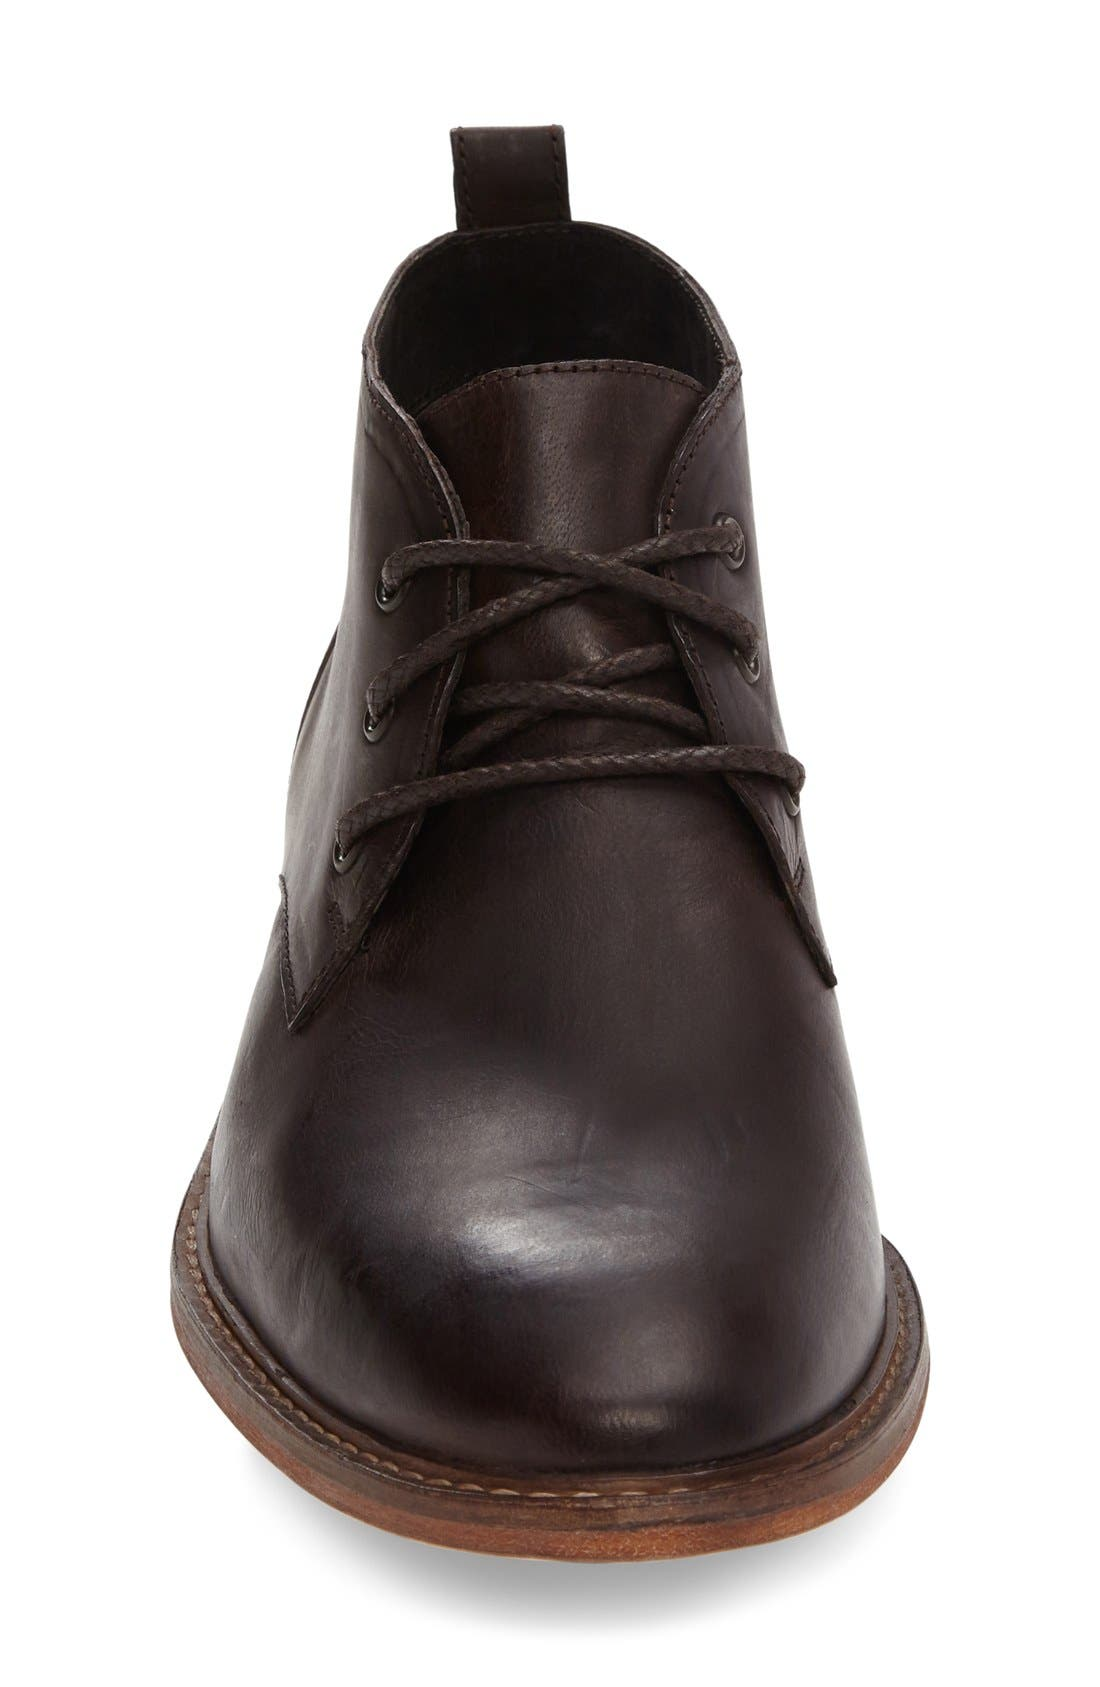 Prove Out Chukka Boot,                             Alternate thumbnail 4, color,                             Brown Leather